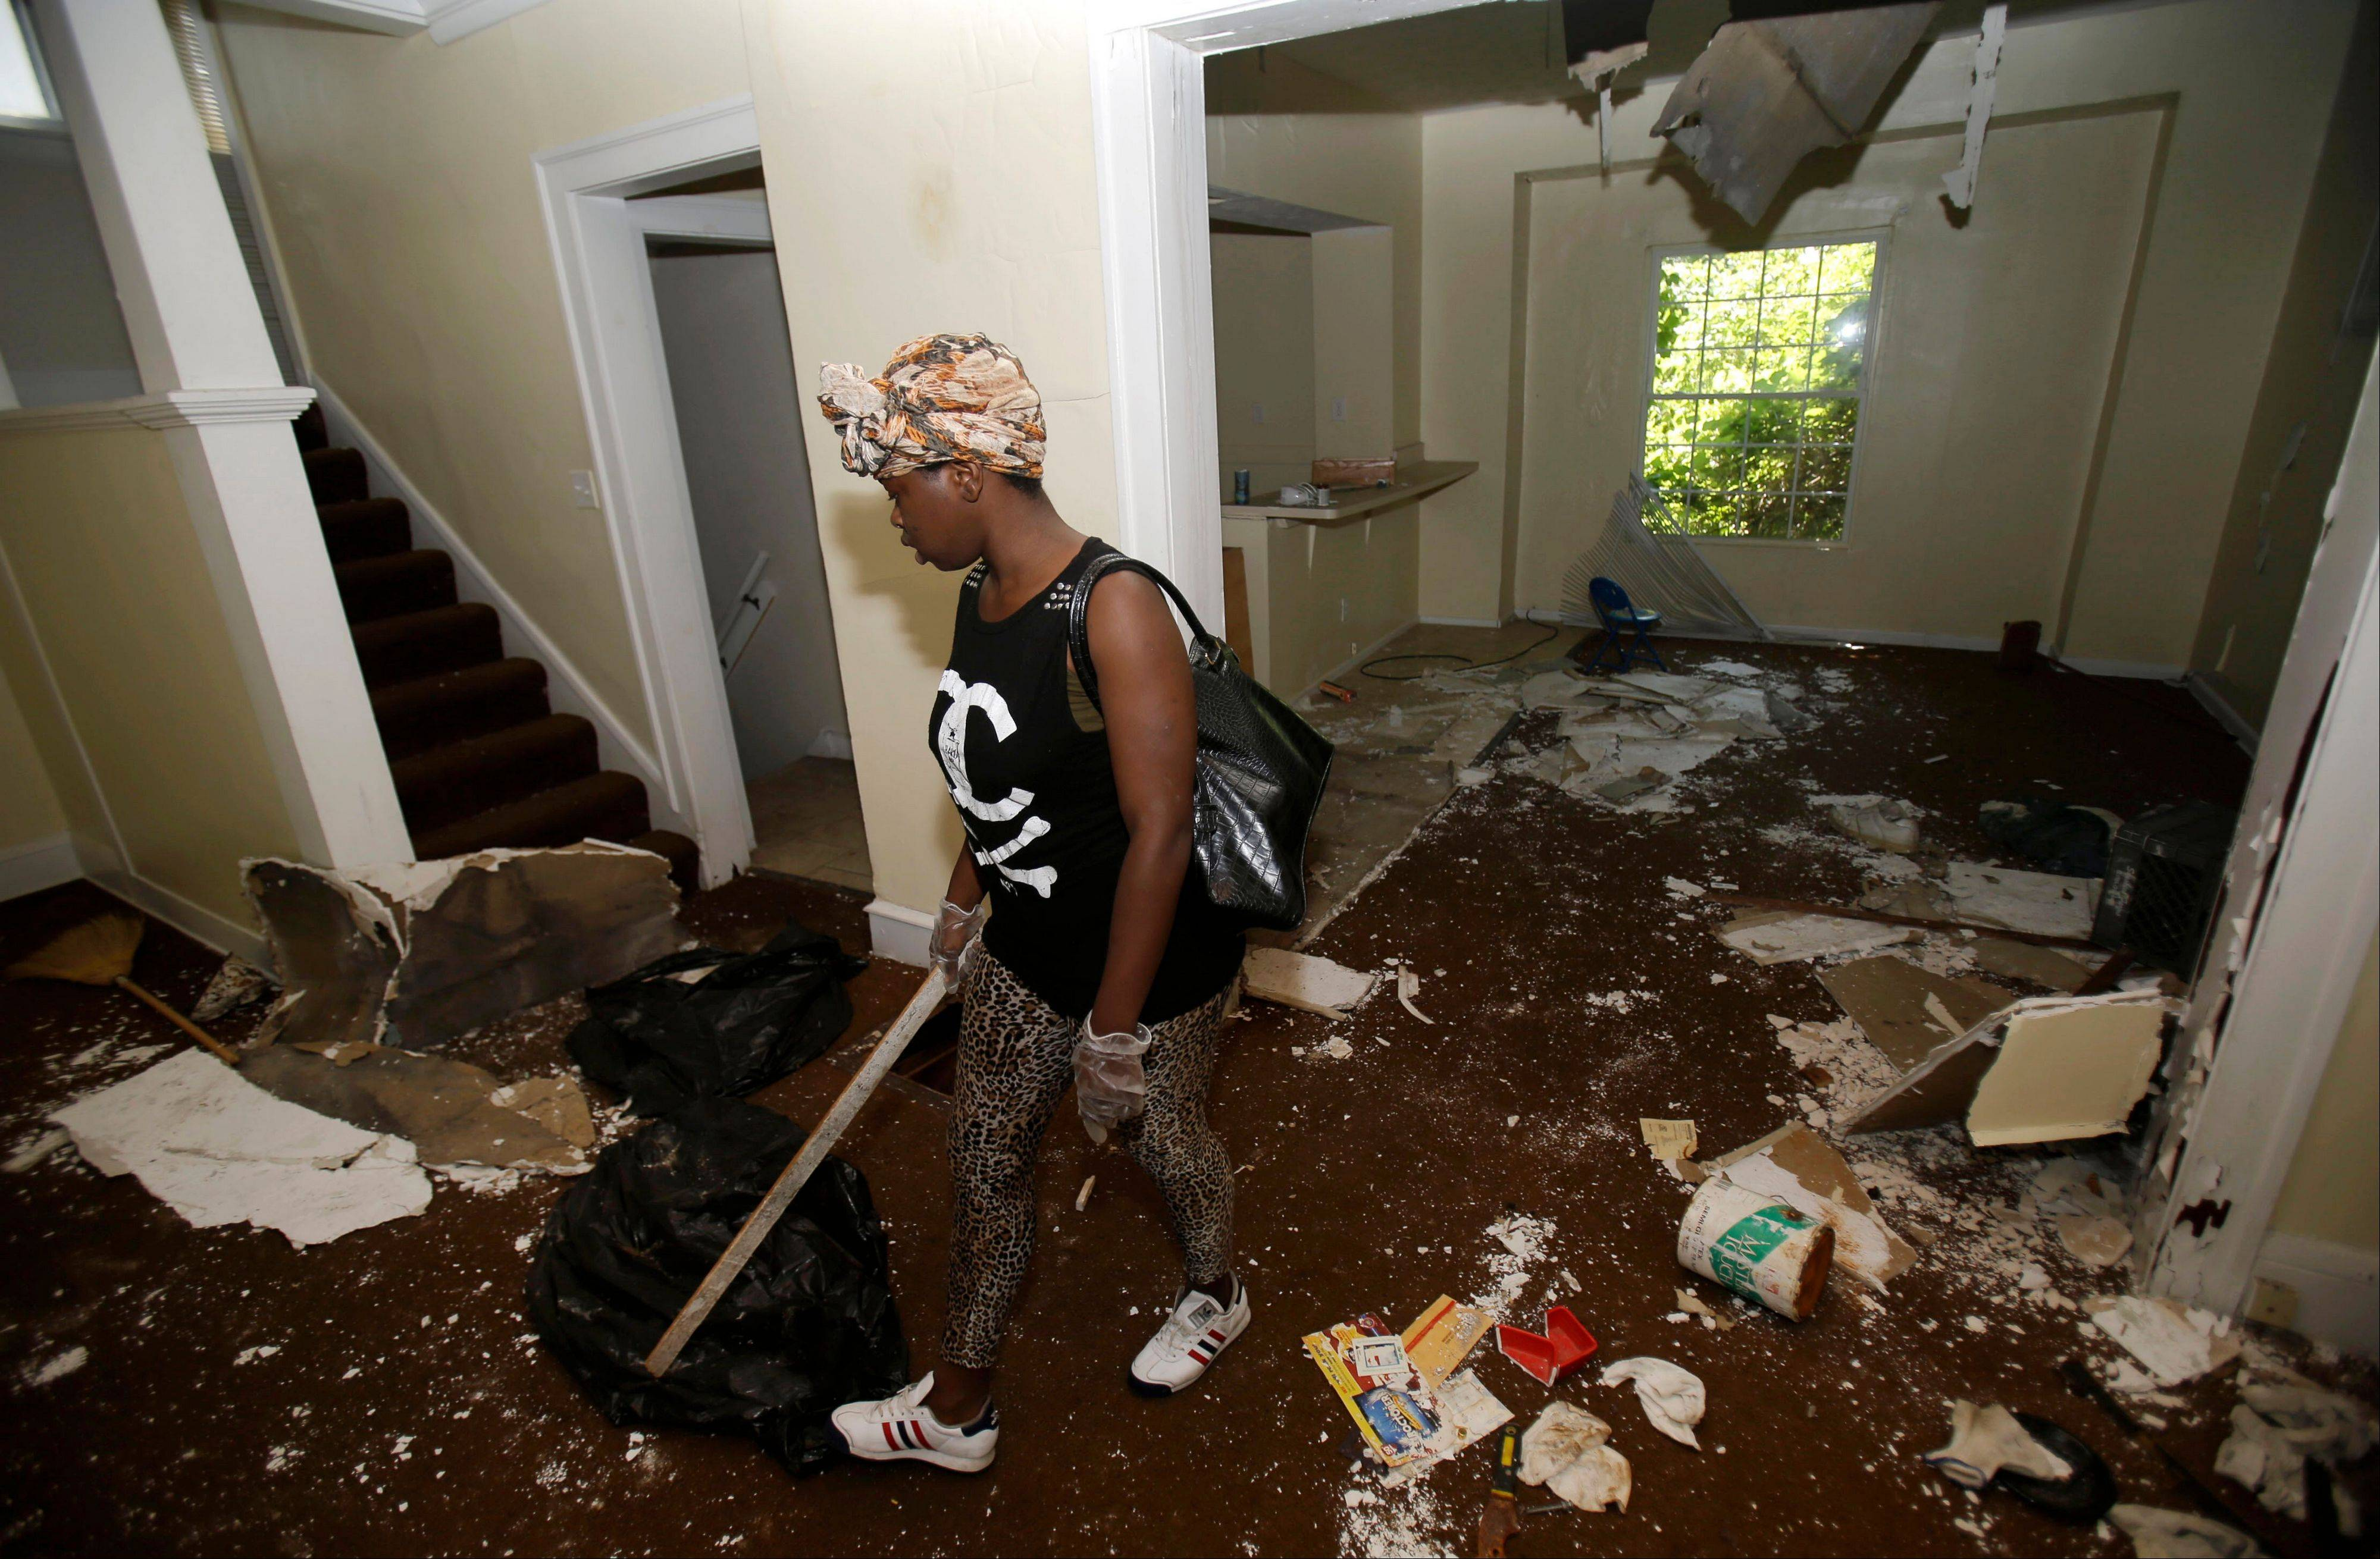 Sanautica Hicks-Ross, 18, searches an abandoned home Sunday near where three bodies were found in East Cleveland, Ohio.